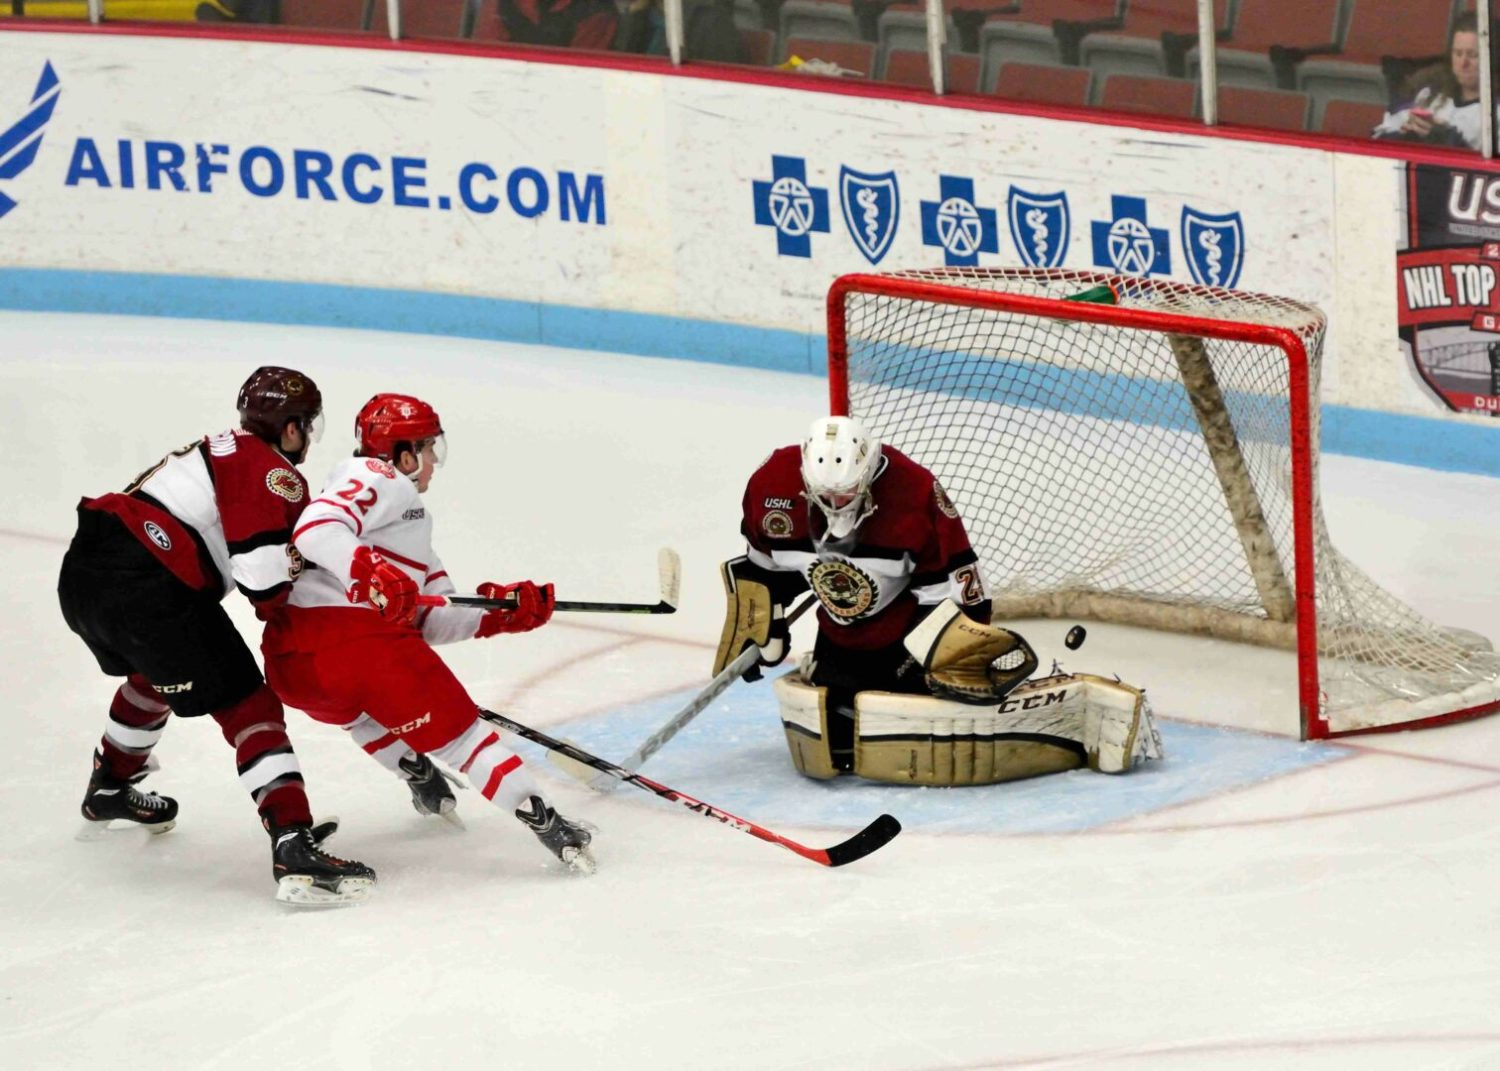 Lumberjacks fall to Dubuque 6-3, narrowing their hold on second place to only one point